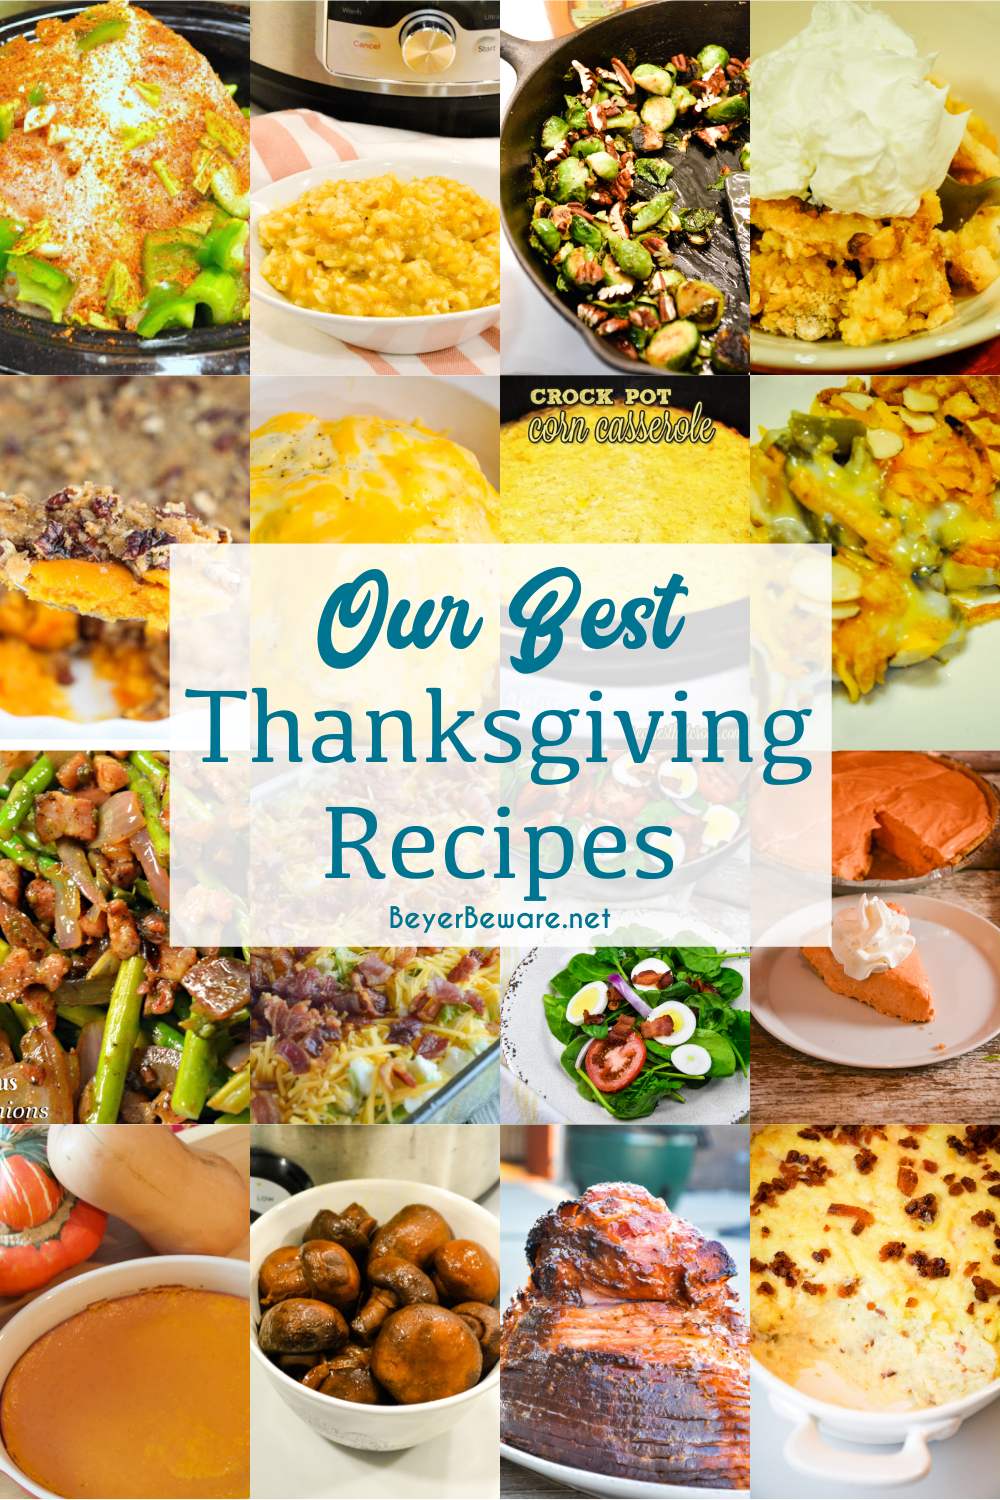 Thanksgiving is just a week away, and we decided you all neededto know our best Thanksgiving recipes for inspiration. We havebrought you ourfamily's favorites on the big holiday. Everything from appetizers to side dishes to the turkey as well as salads and cocktails are included in ourbest Thanksgiving recipes.